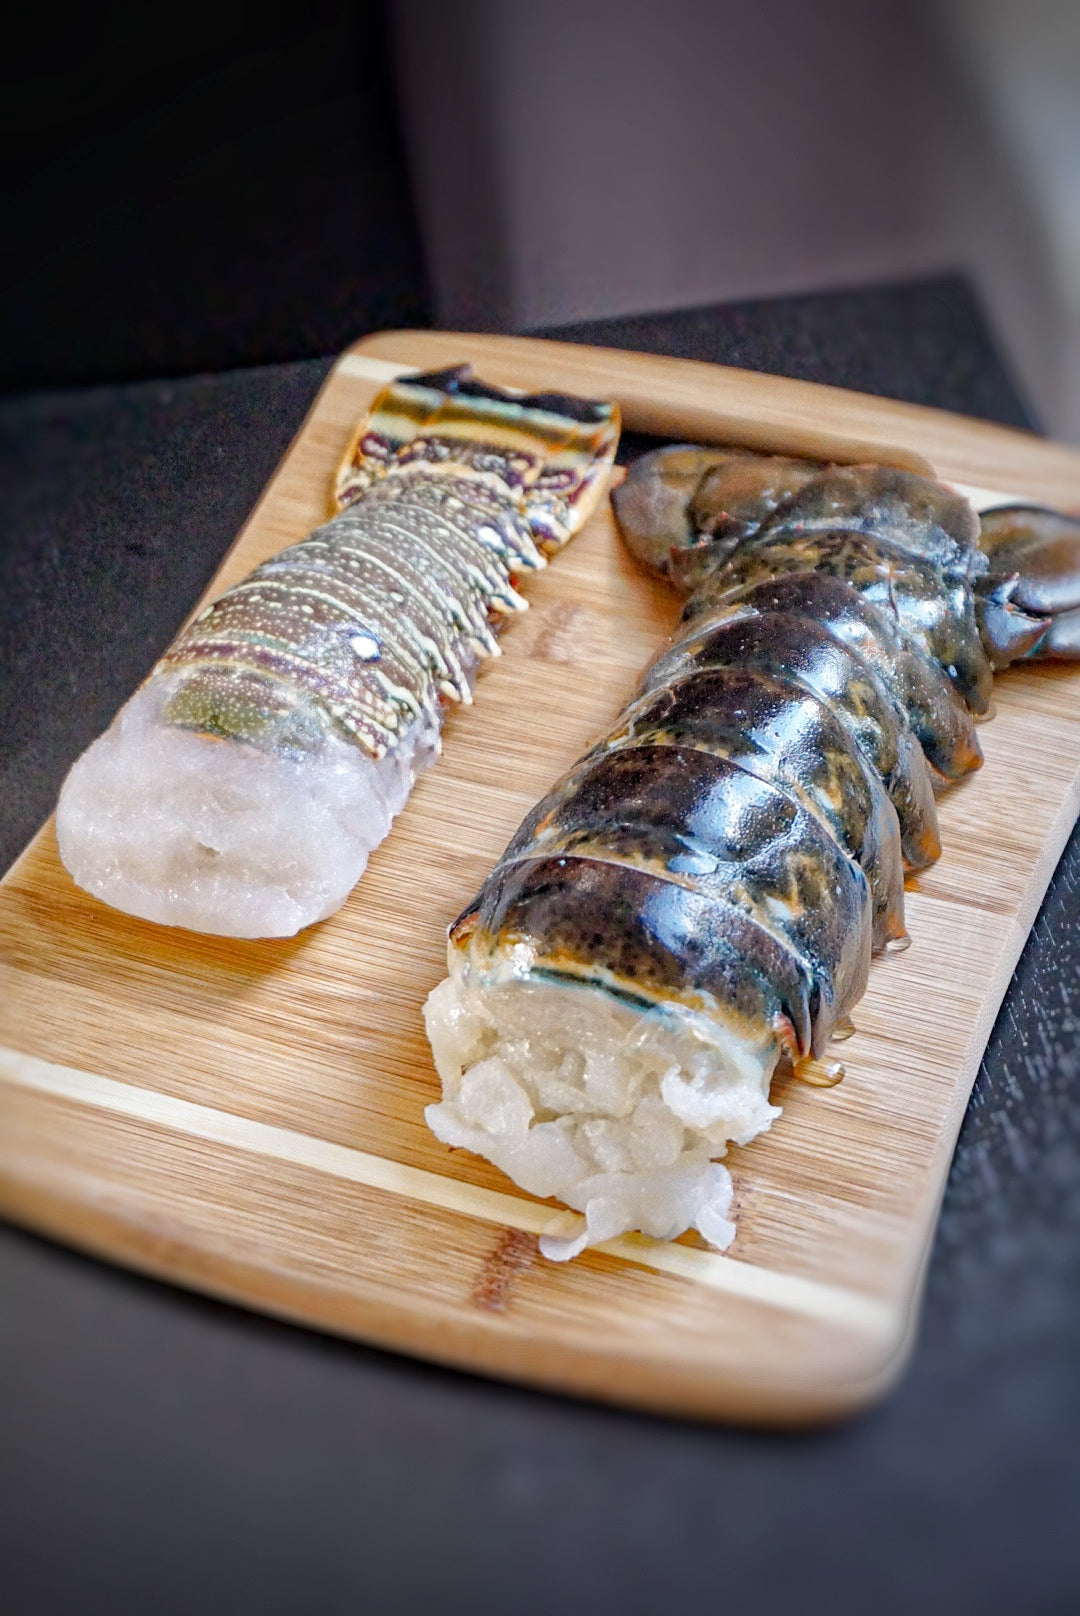 Colossal Jumbo Lobster Tail (1 lb - 1 1/2 lb)